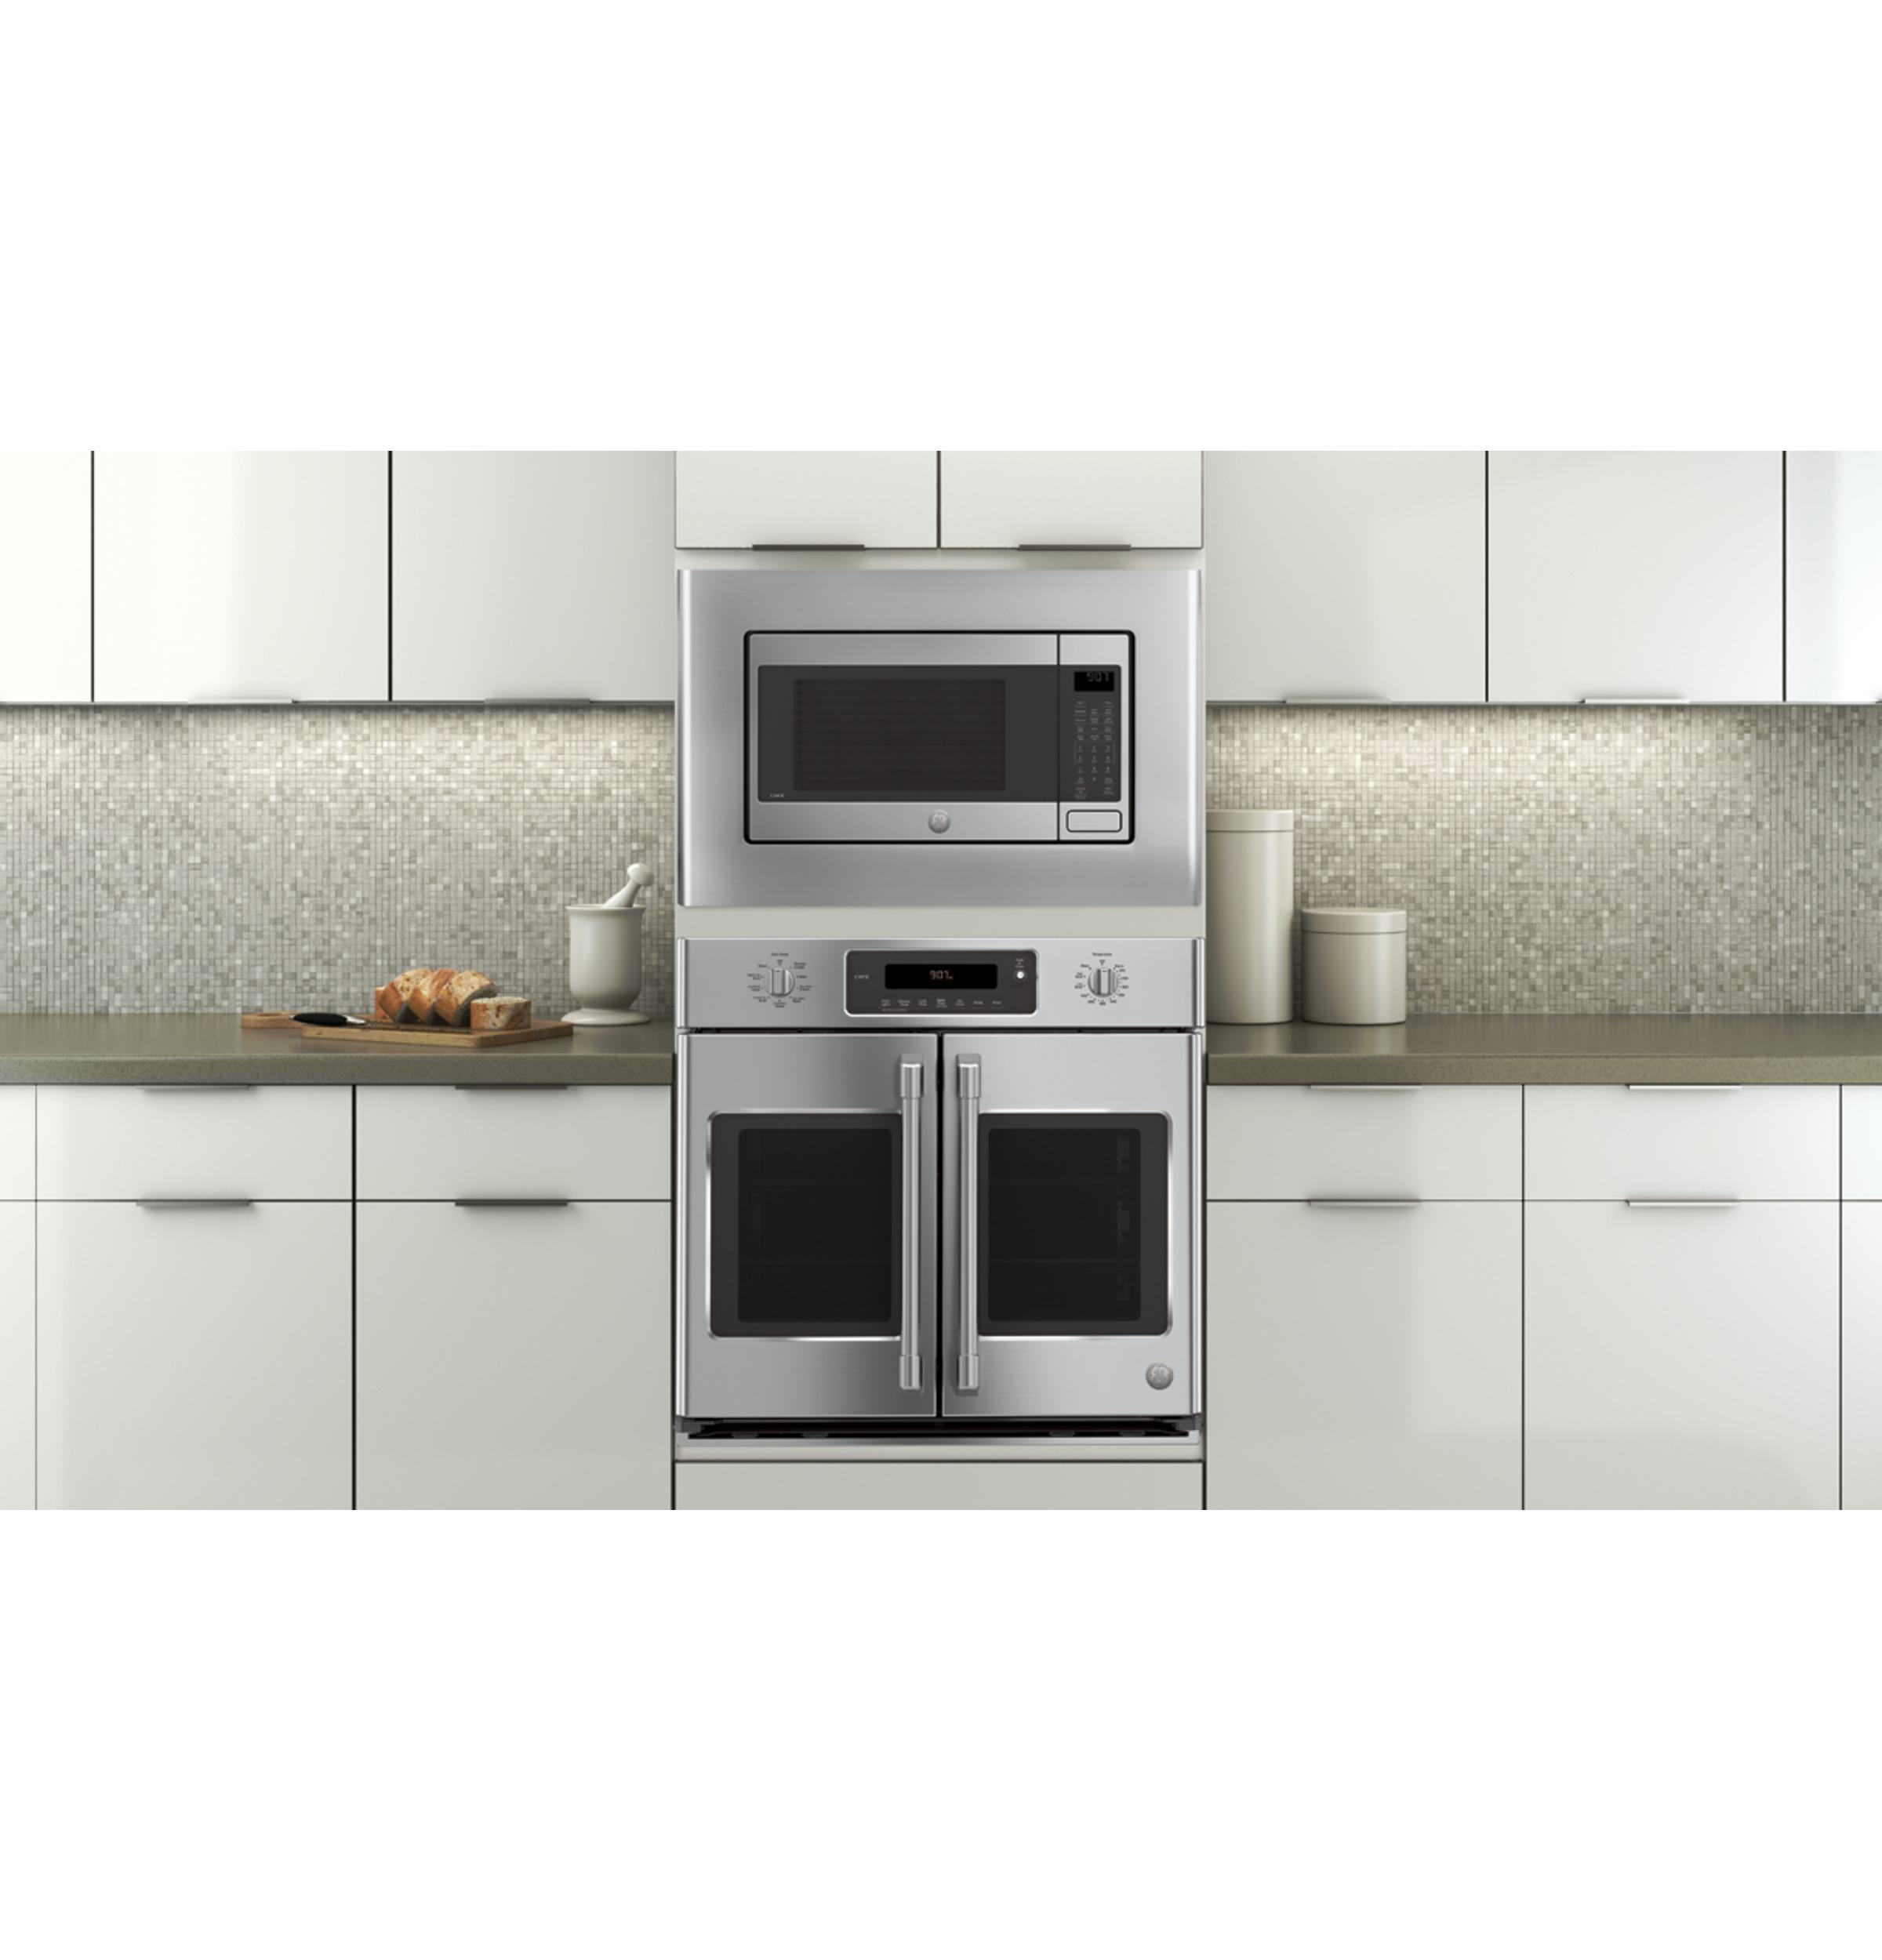 countertops modern commercial oven chairs about convection with planner ideas countertop microwave decoration all ovens kitchen